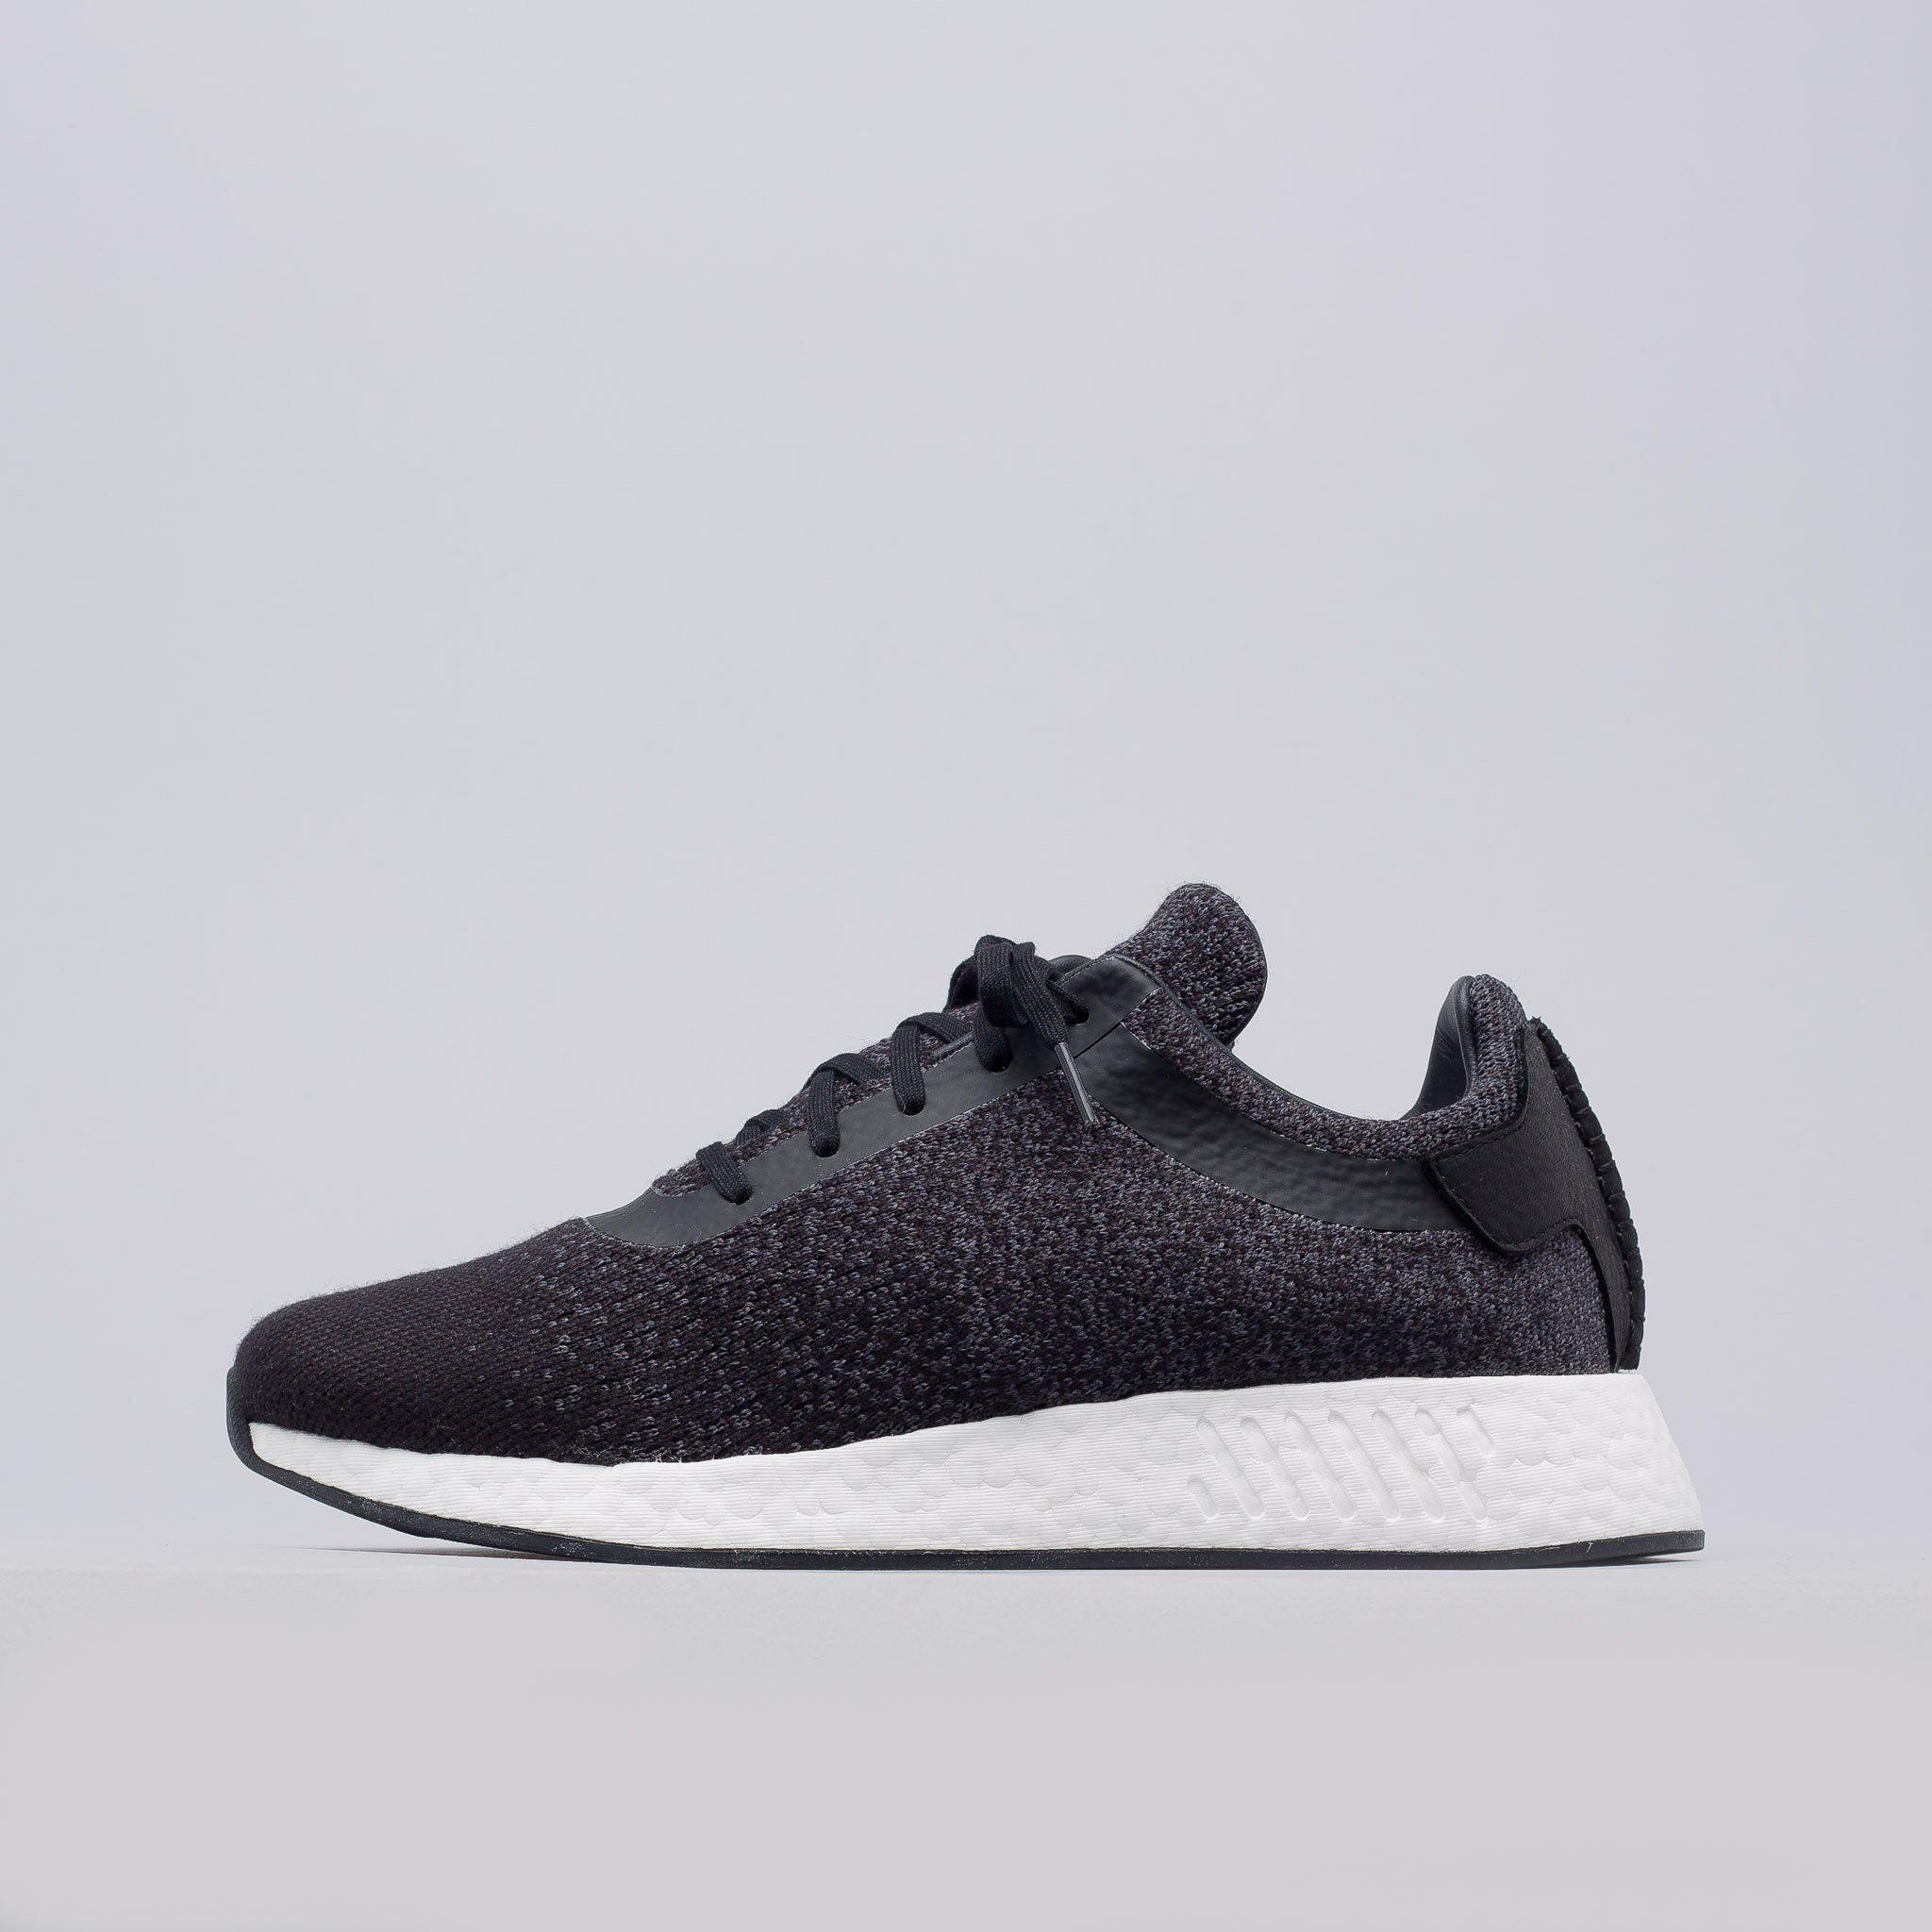 professional sale watch save up to 80% adidas Wool X Wings+horns Nmd R2 Primeknit Core Black/utility ...